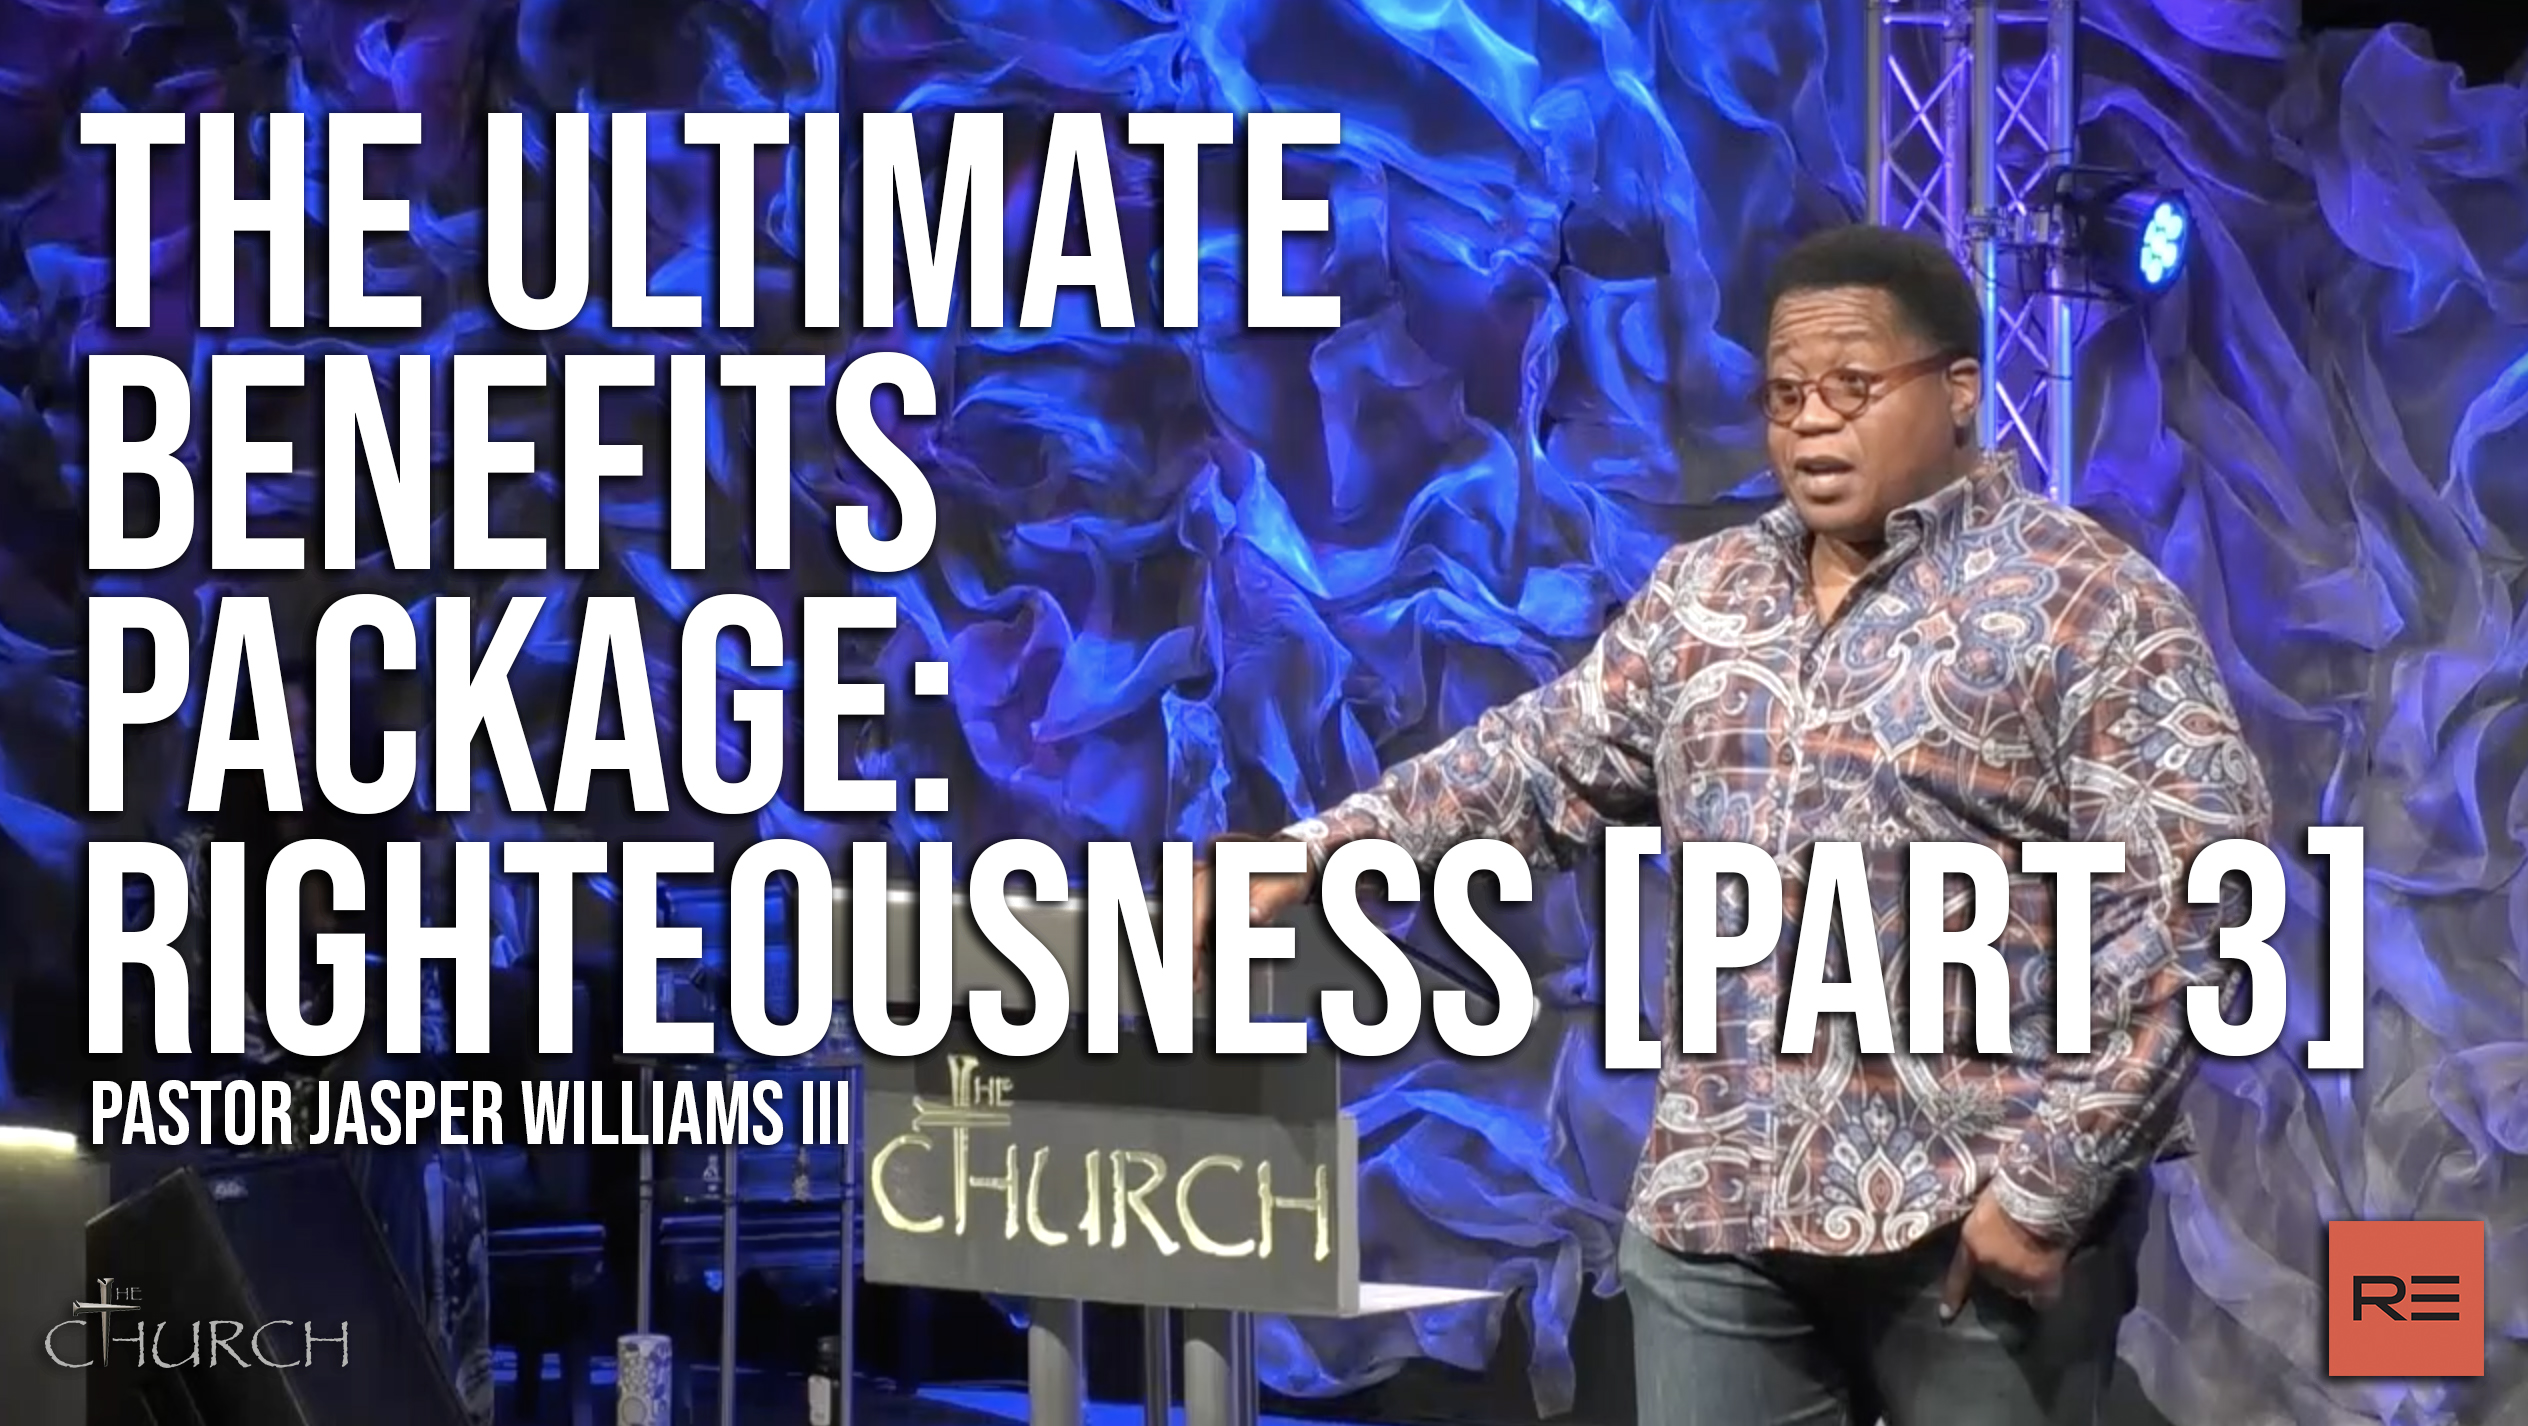 The Ultimate Benefits Package - Righteousness [Part 3] | Pastor Jasper Williams III